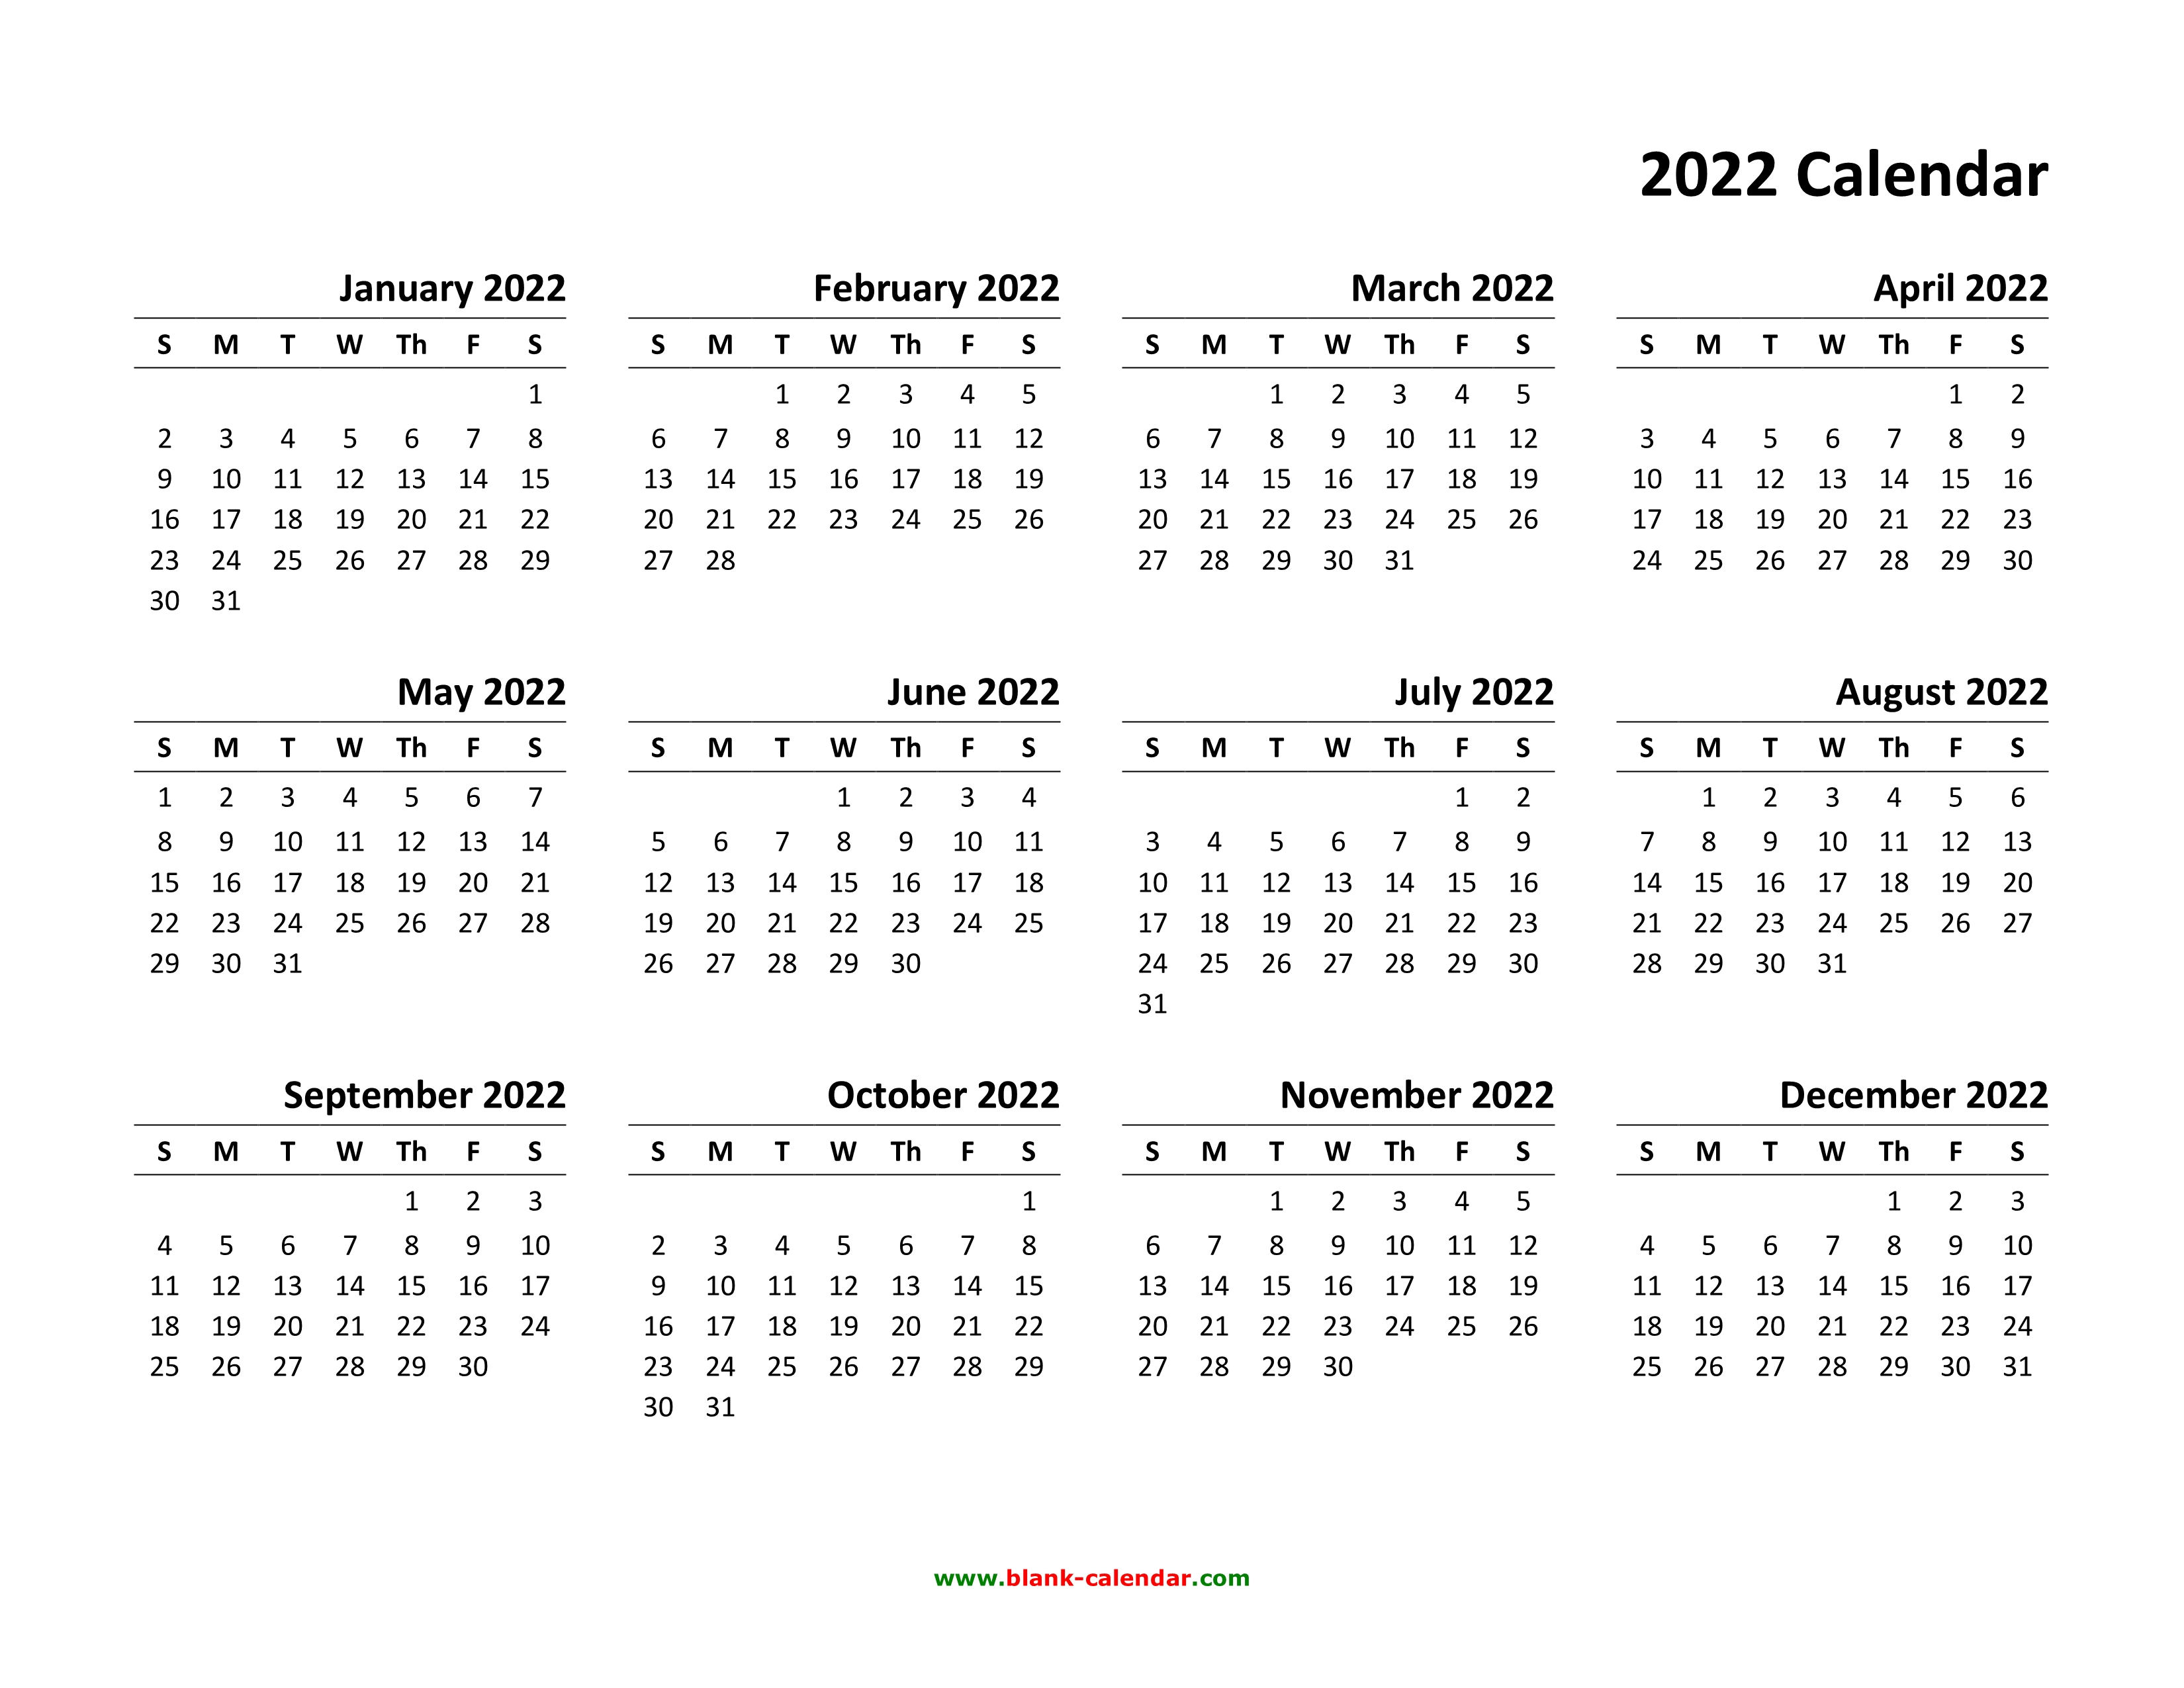 2022 Downloadable Calendar.Yearly Calendar 2022 Free Download And Print